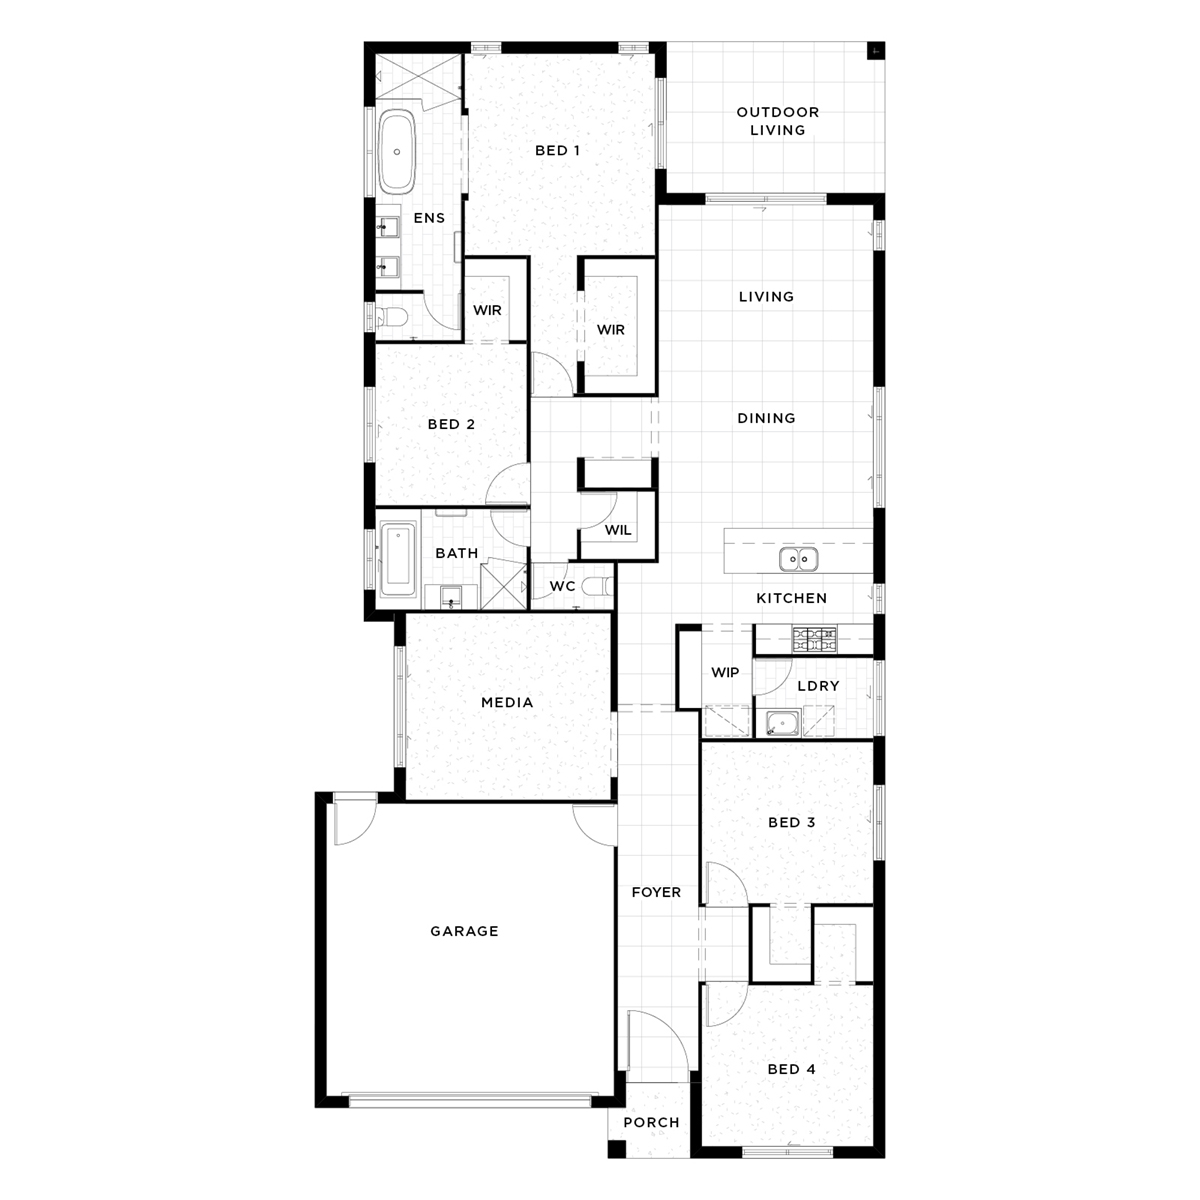 UL House Plans_Solace 24